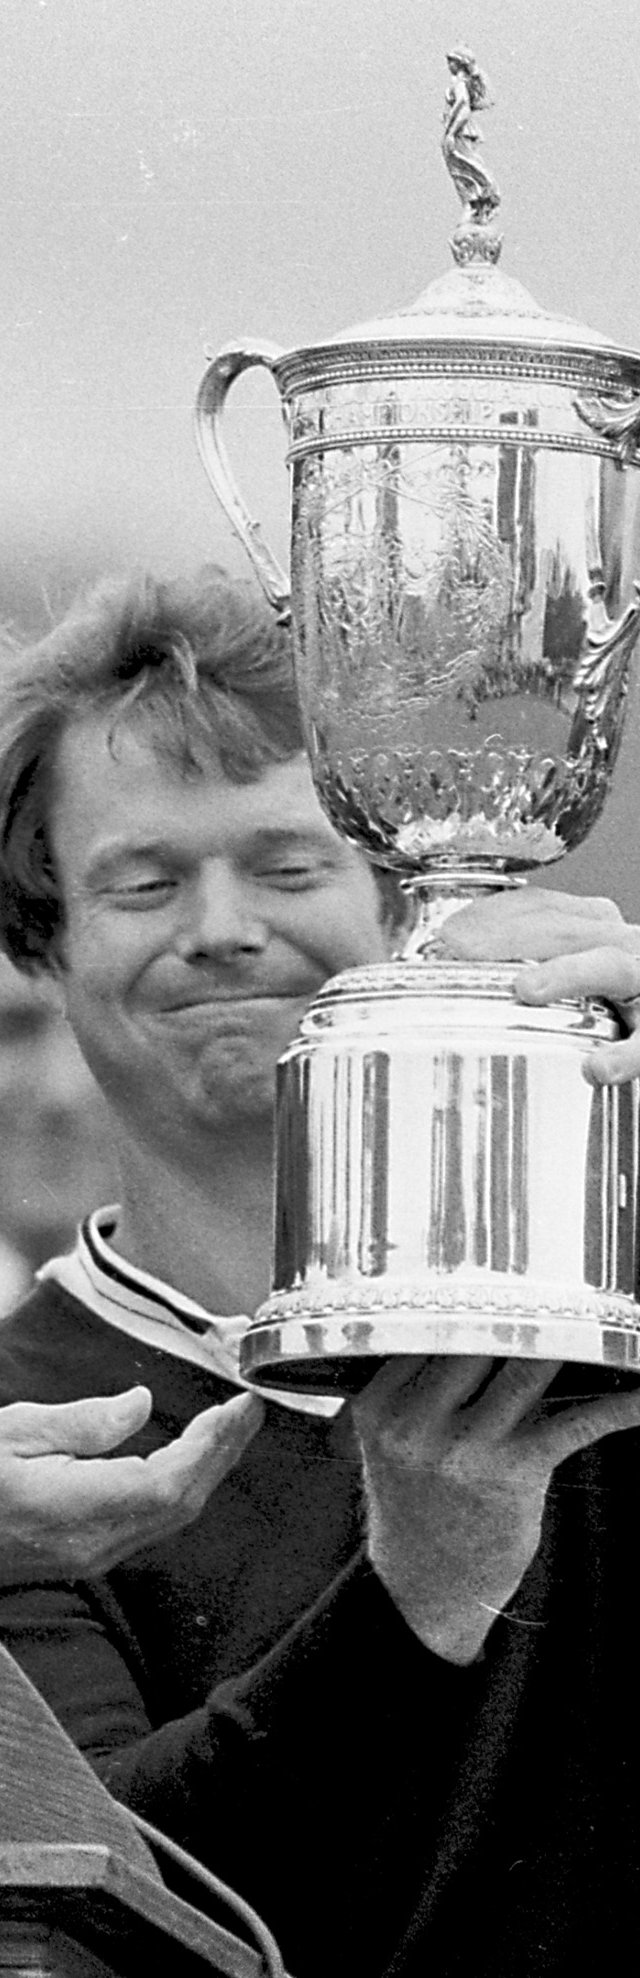 Tom Watson holds the trophy after winning the 1982 U.S. Open.